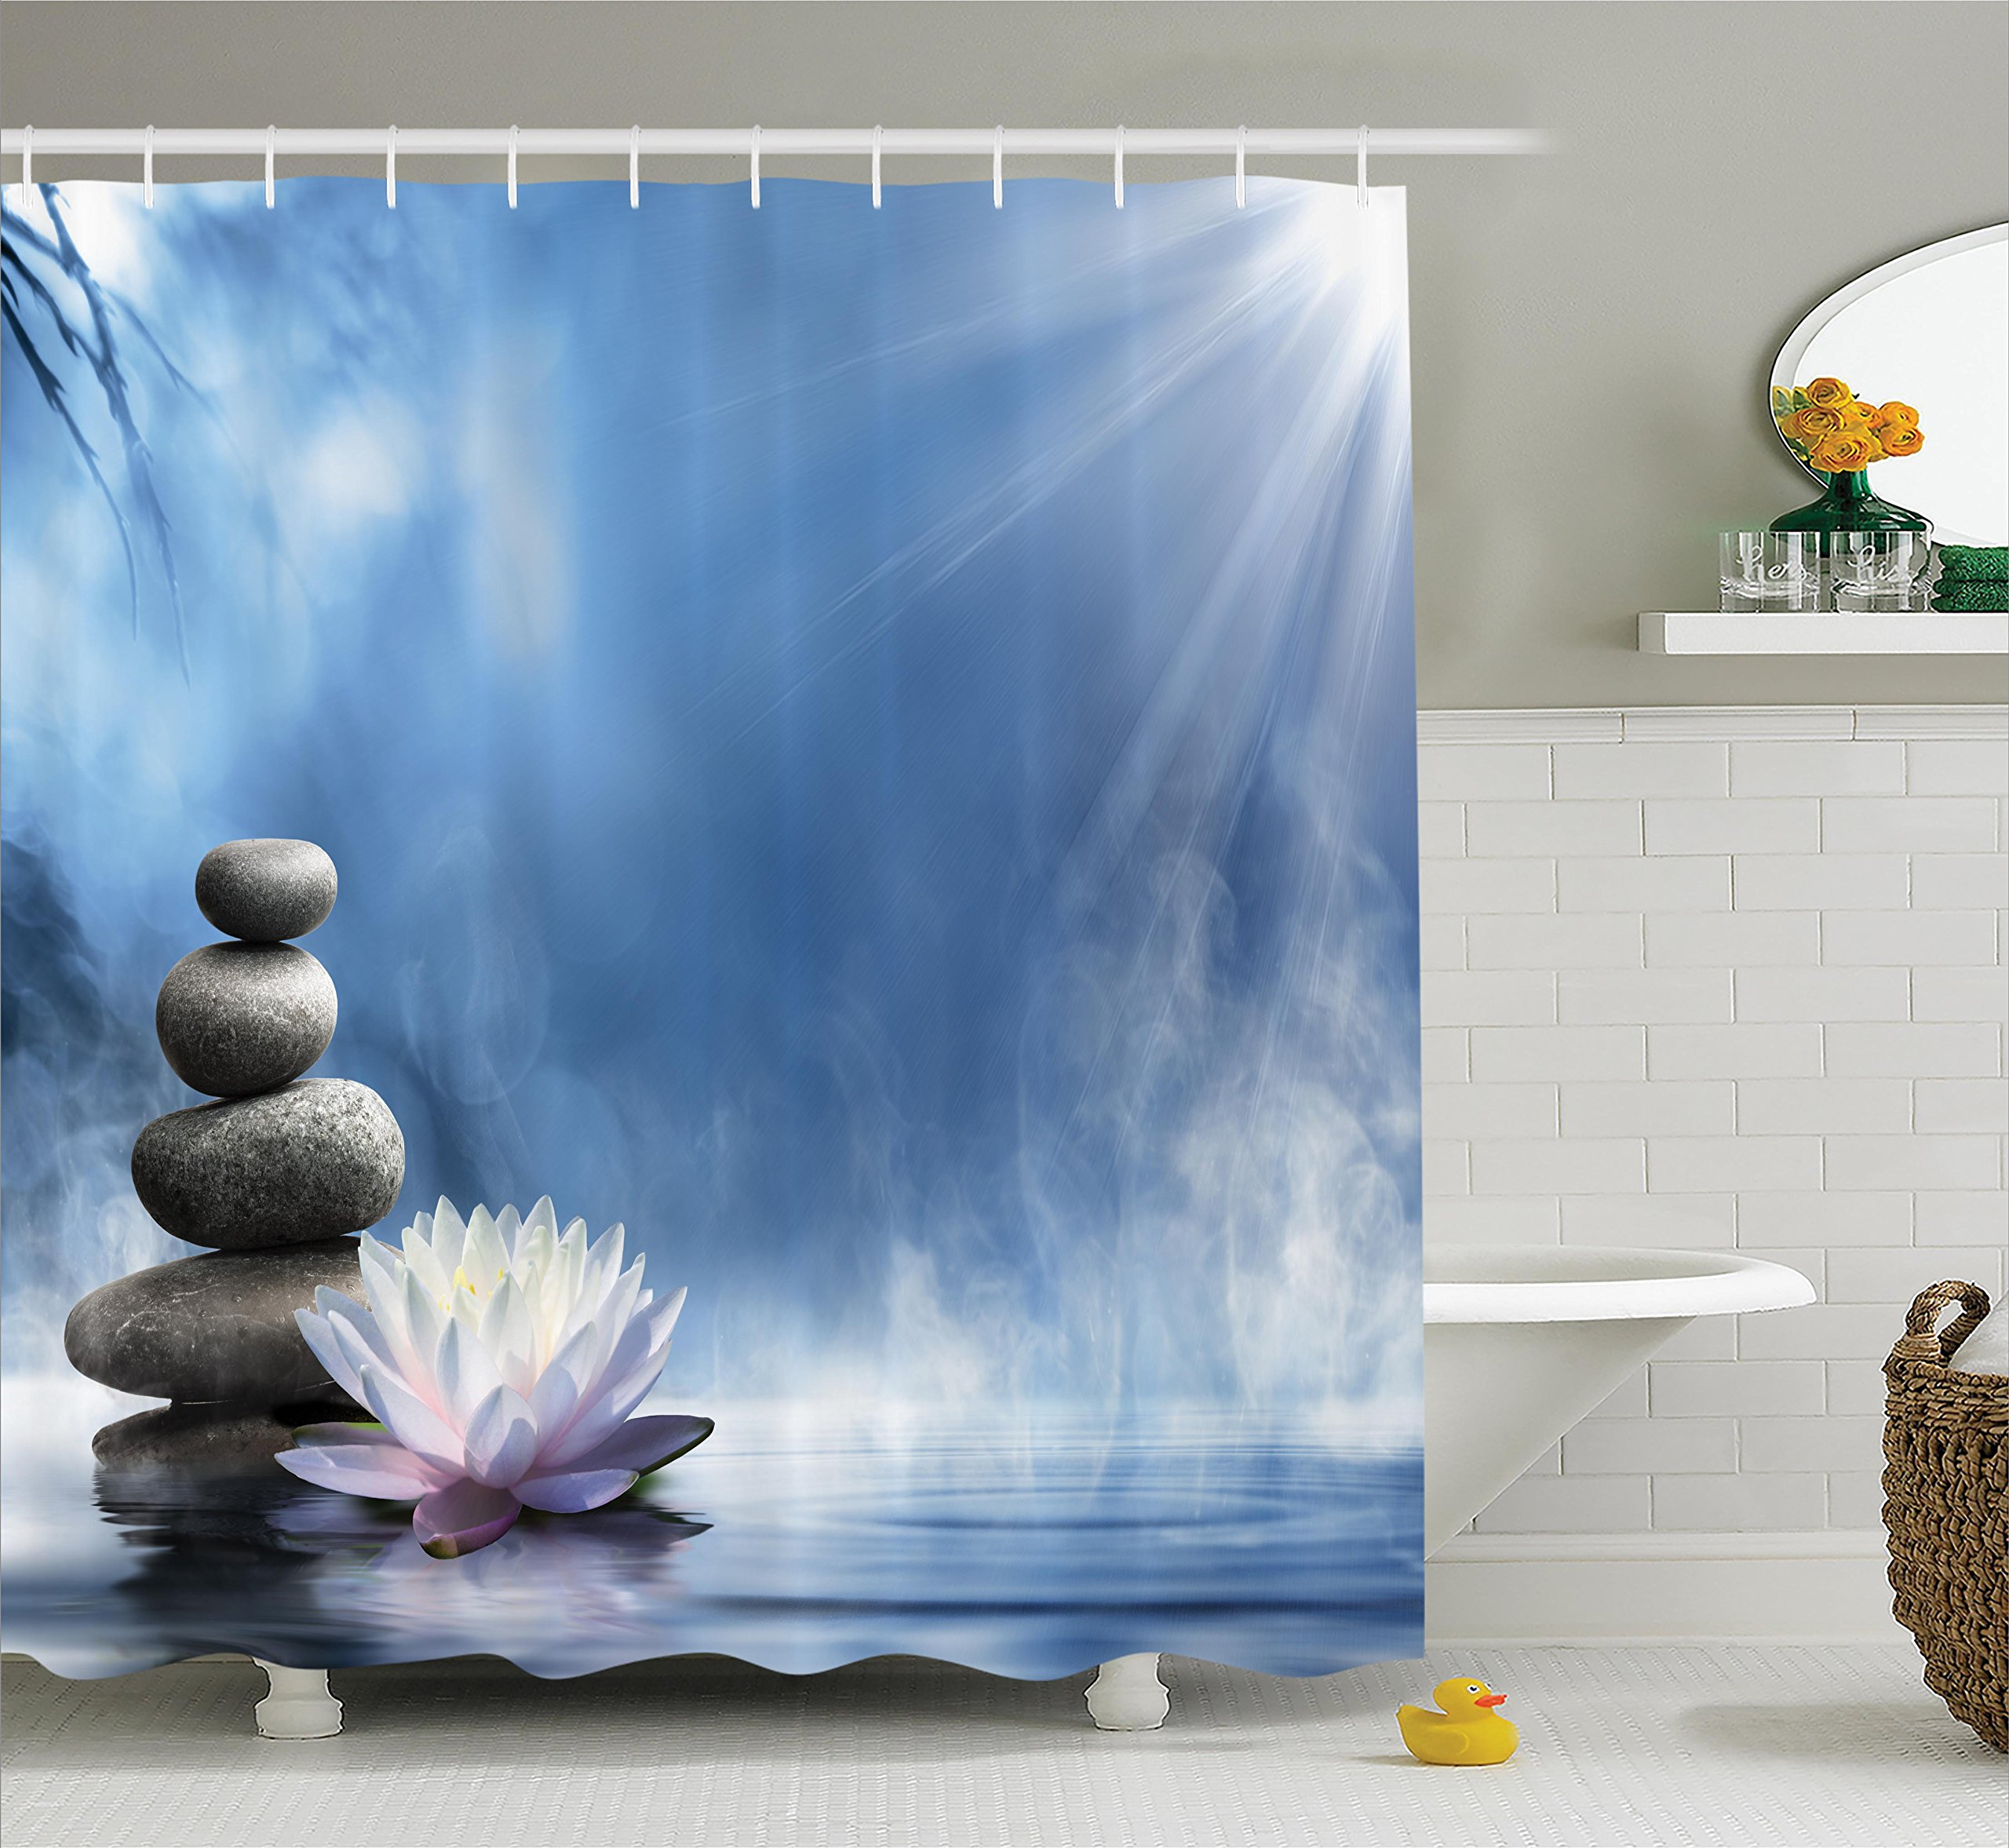 Ambesonne Spa Decor Collection, Purity of the Zen Massage Magic Lily Stones Sunbeams Spirituality Serenity Picture Print, Polyester Fabric Bathroom Shower Curtain Set with Hooks, Blue Dimgray